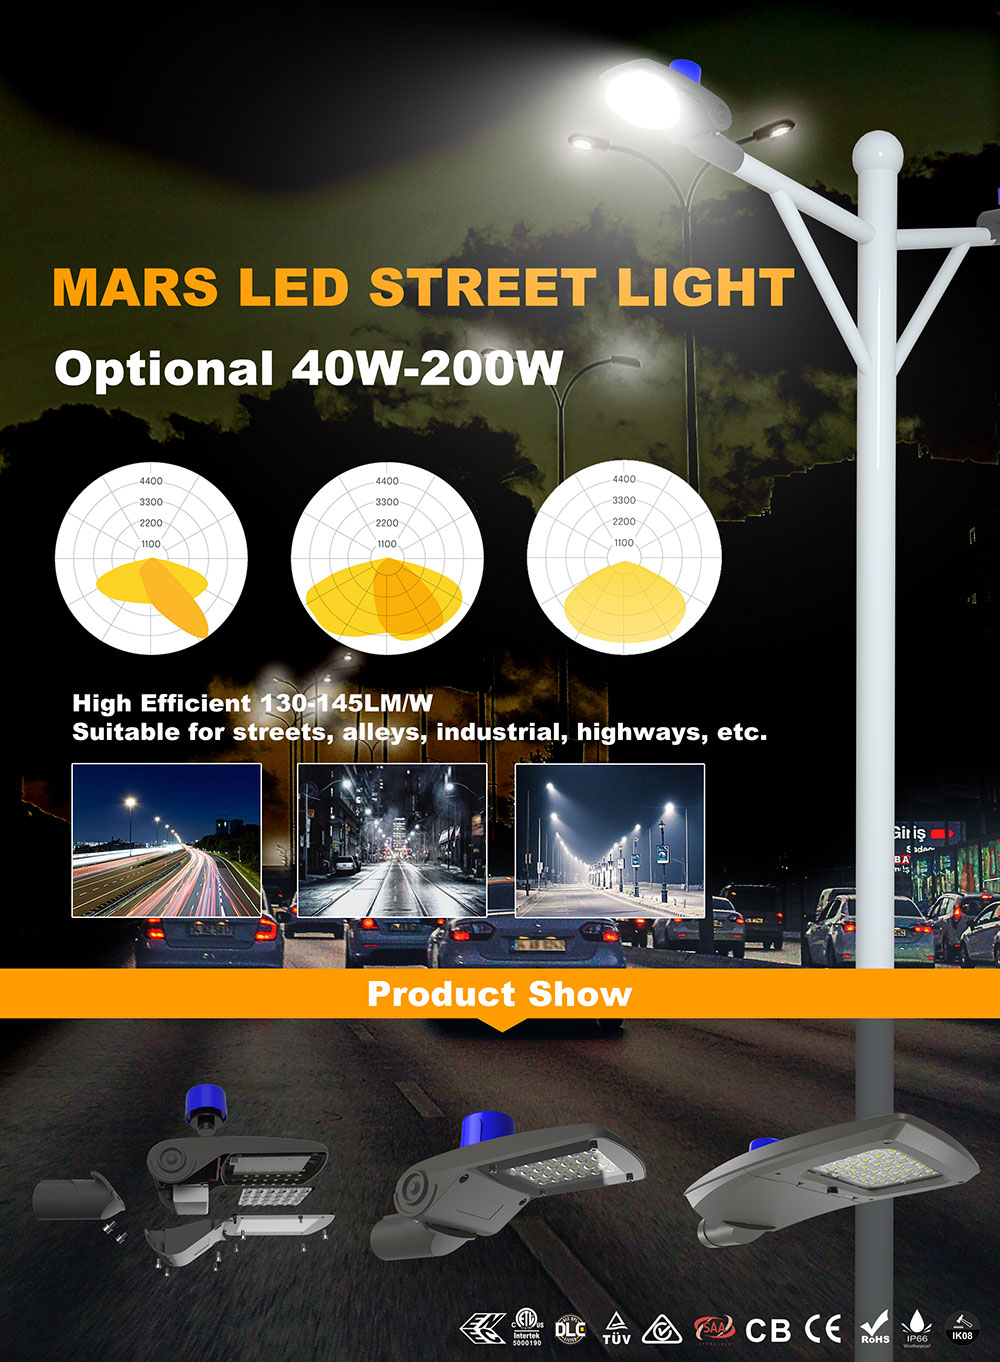 2020 new style led street light show and introduction